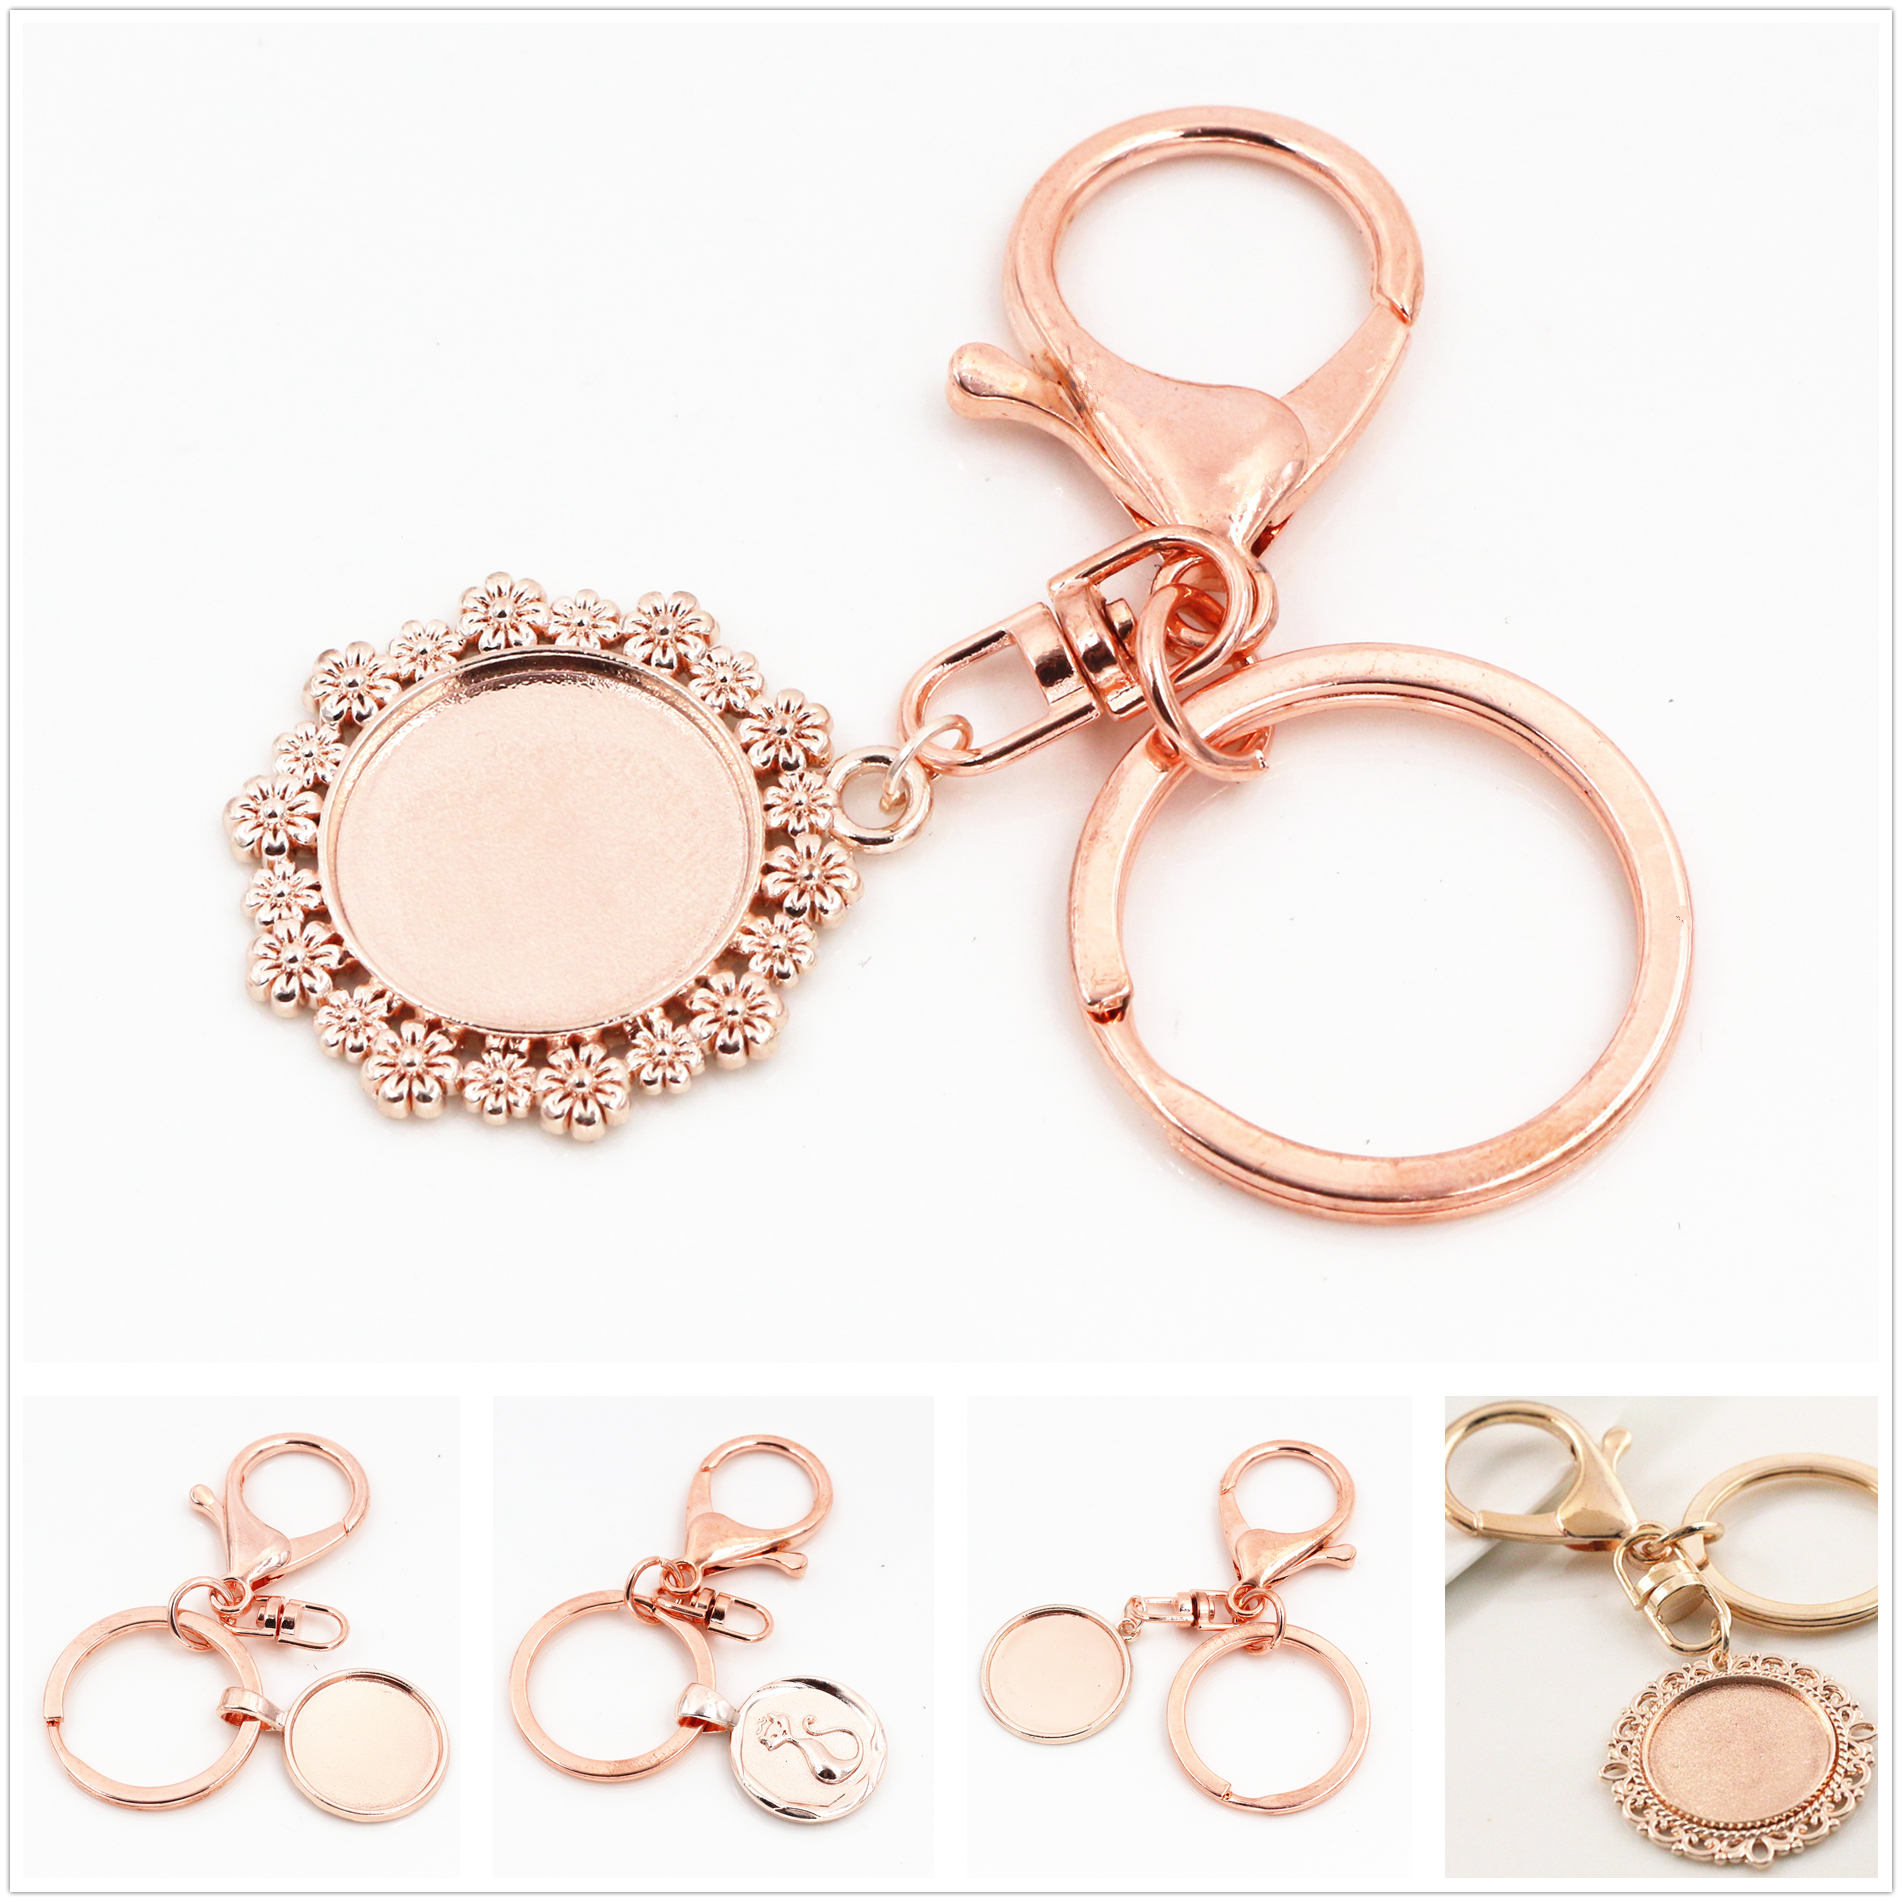 2pcs 20mm Inner Size Rose Gold Color Cameo Setting Base;Handmade Cameo Setting, Metal Key Chains Accessor